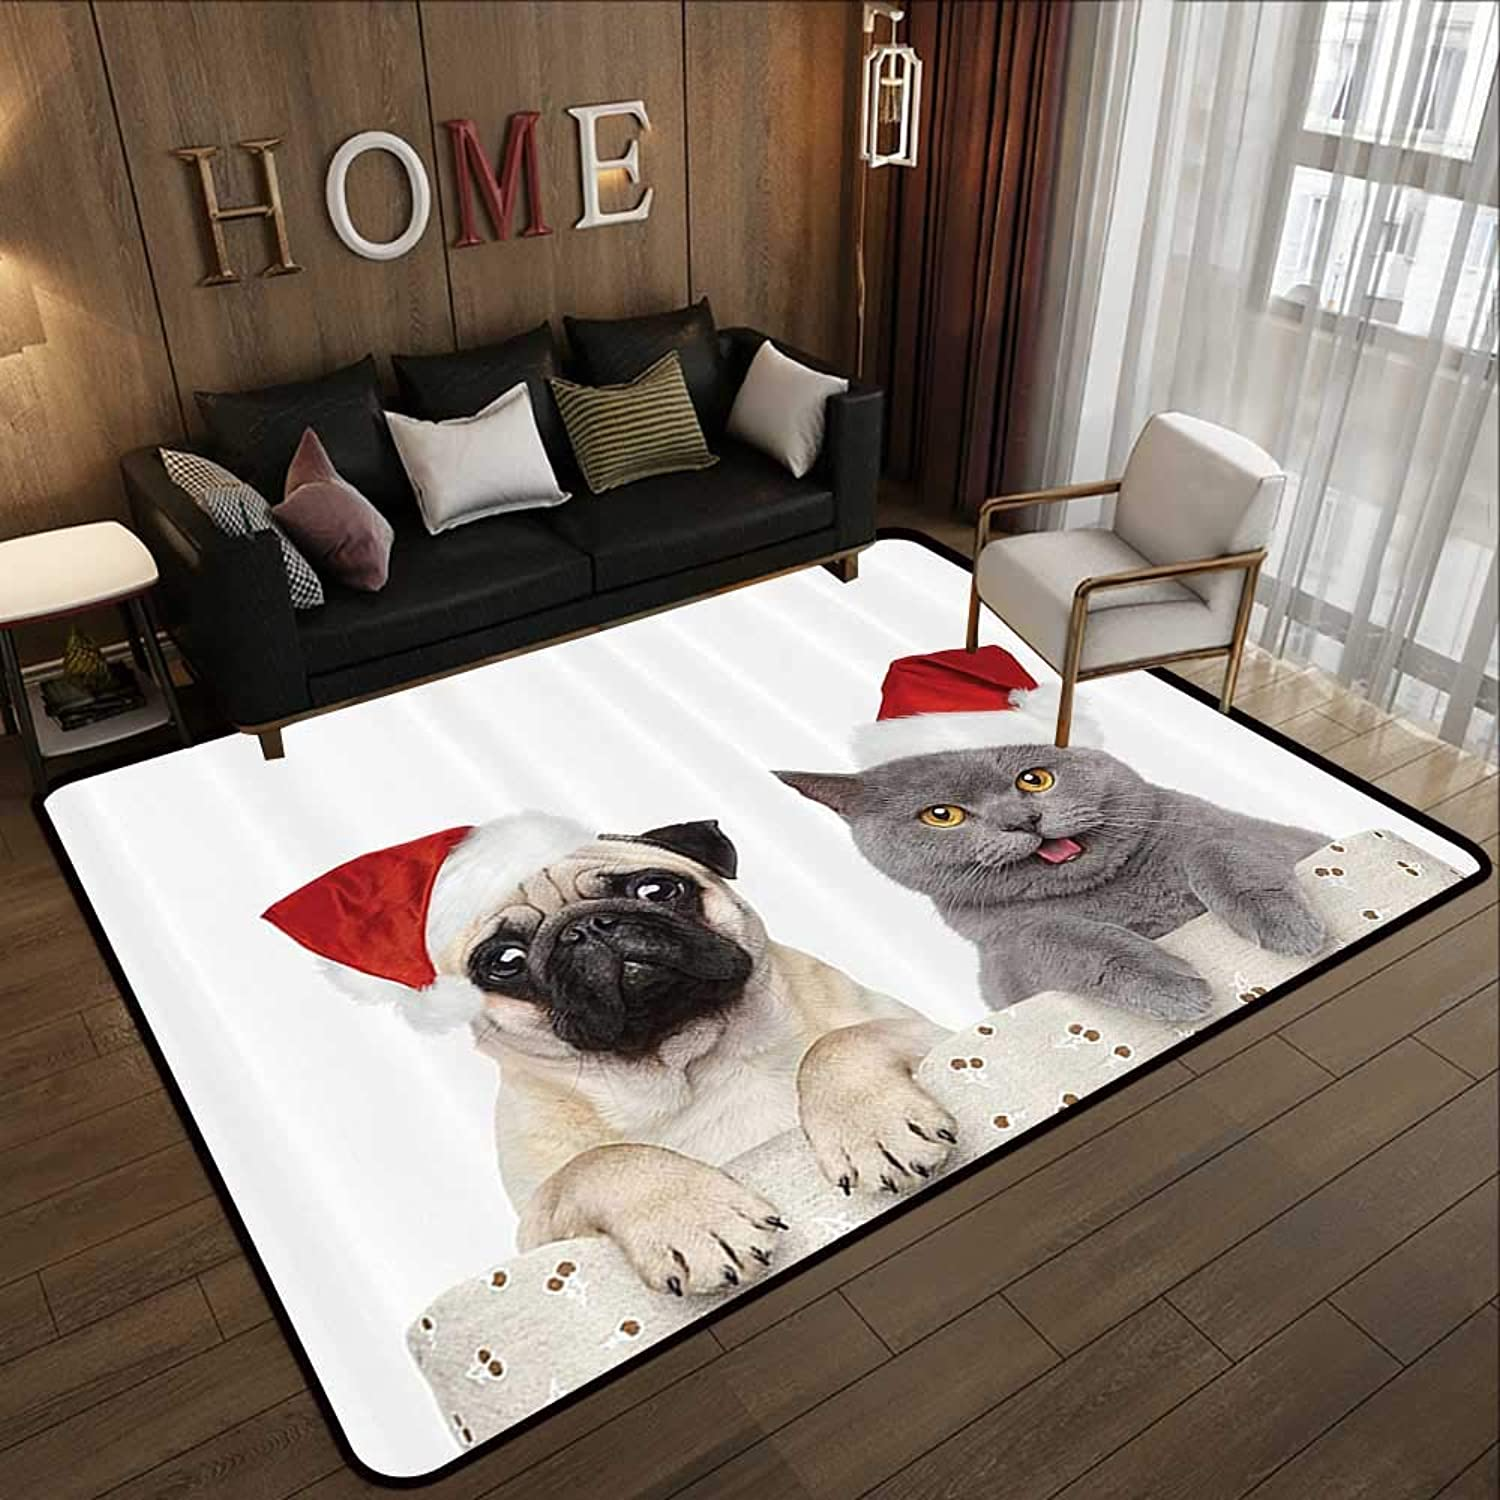 Floor mat,Pug,Christmas Themed Animal Photography with a Cat and Dog Wearing Santa Hats Print,Grey Cream Red 35 x 59  Indoor Outdoor Rubber Mat